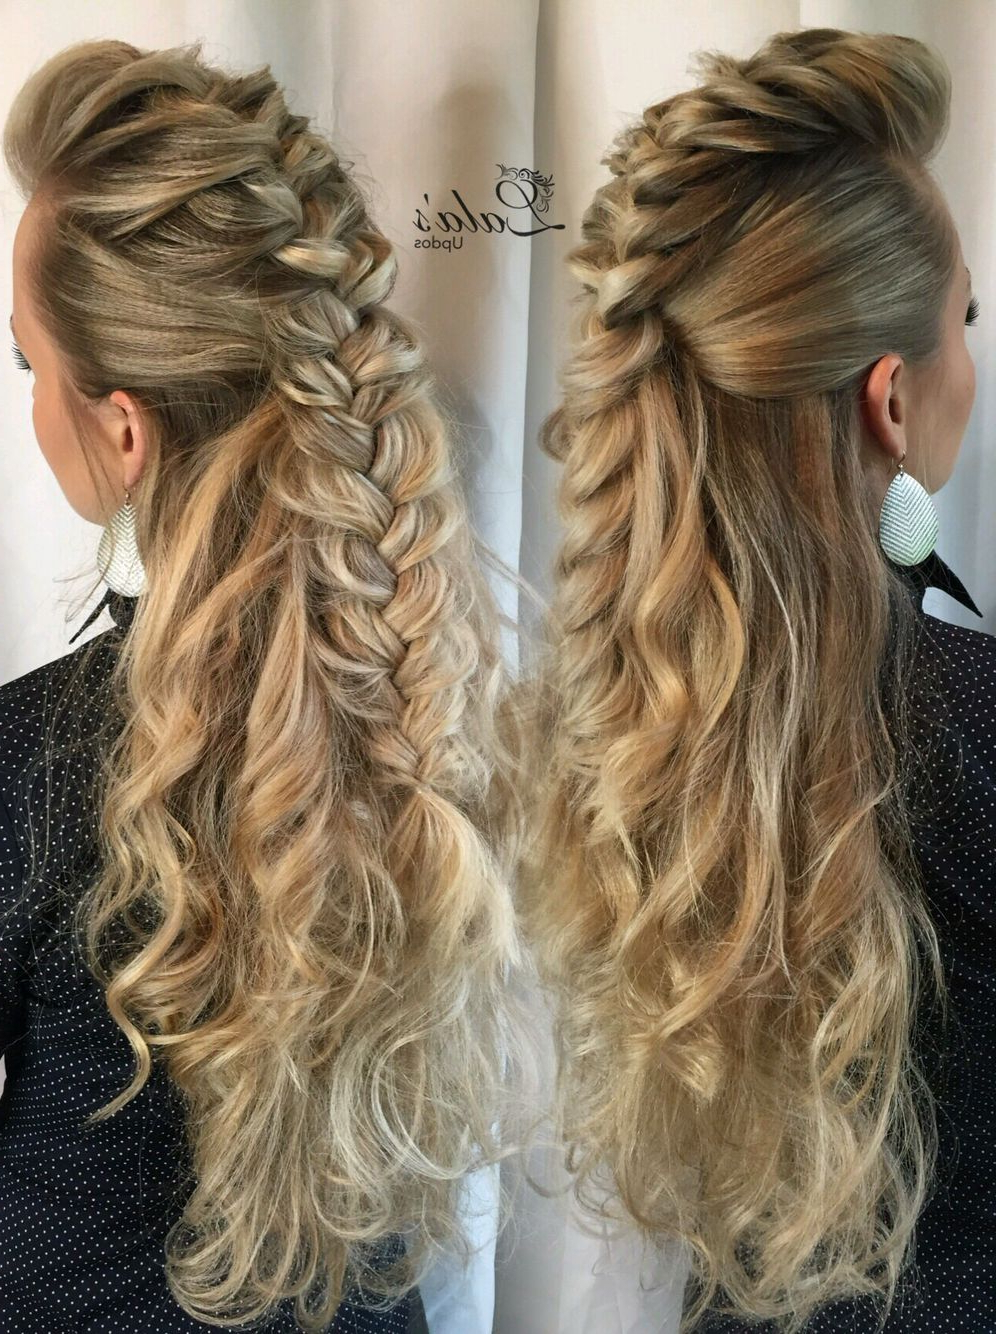 Long Hair Styles, Hair Styles, Cool Hairstyles Intended For Most Up To Date Faux Hawk Braid Hairstyles (View 16 of 20)